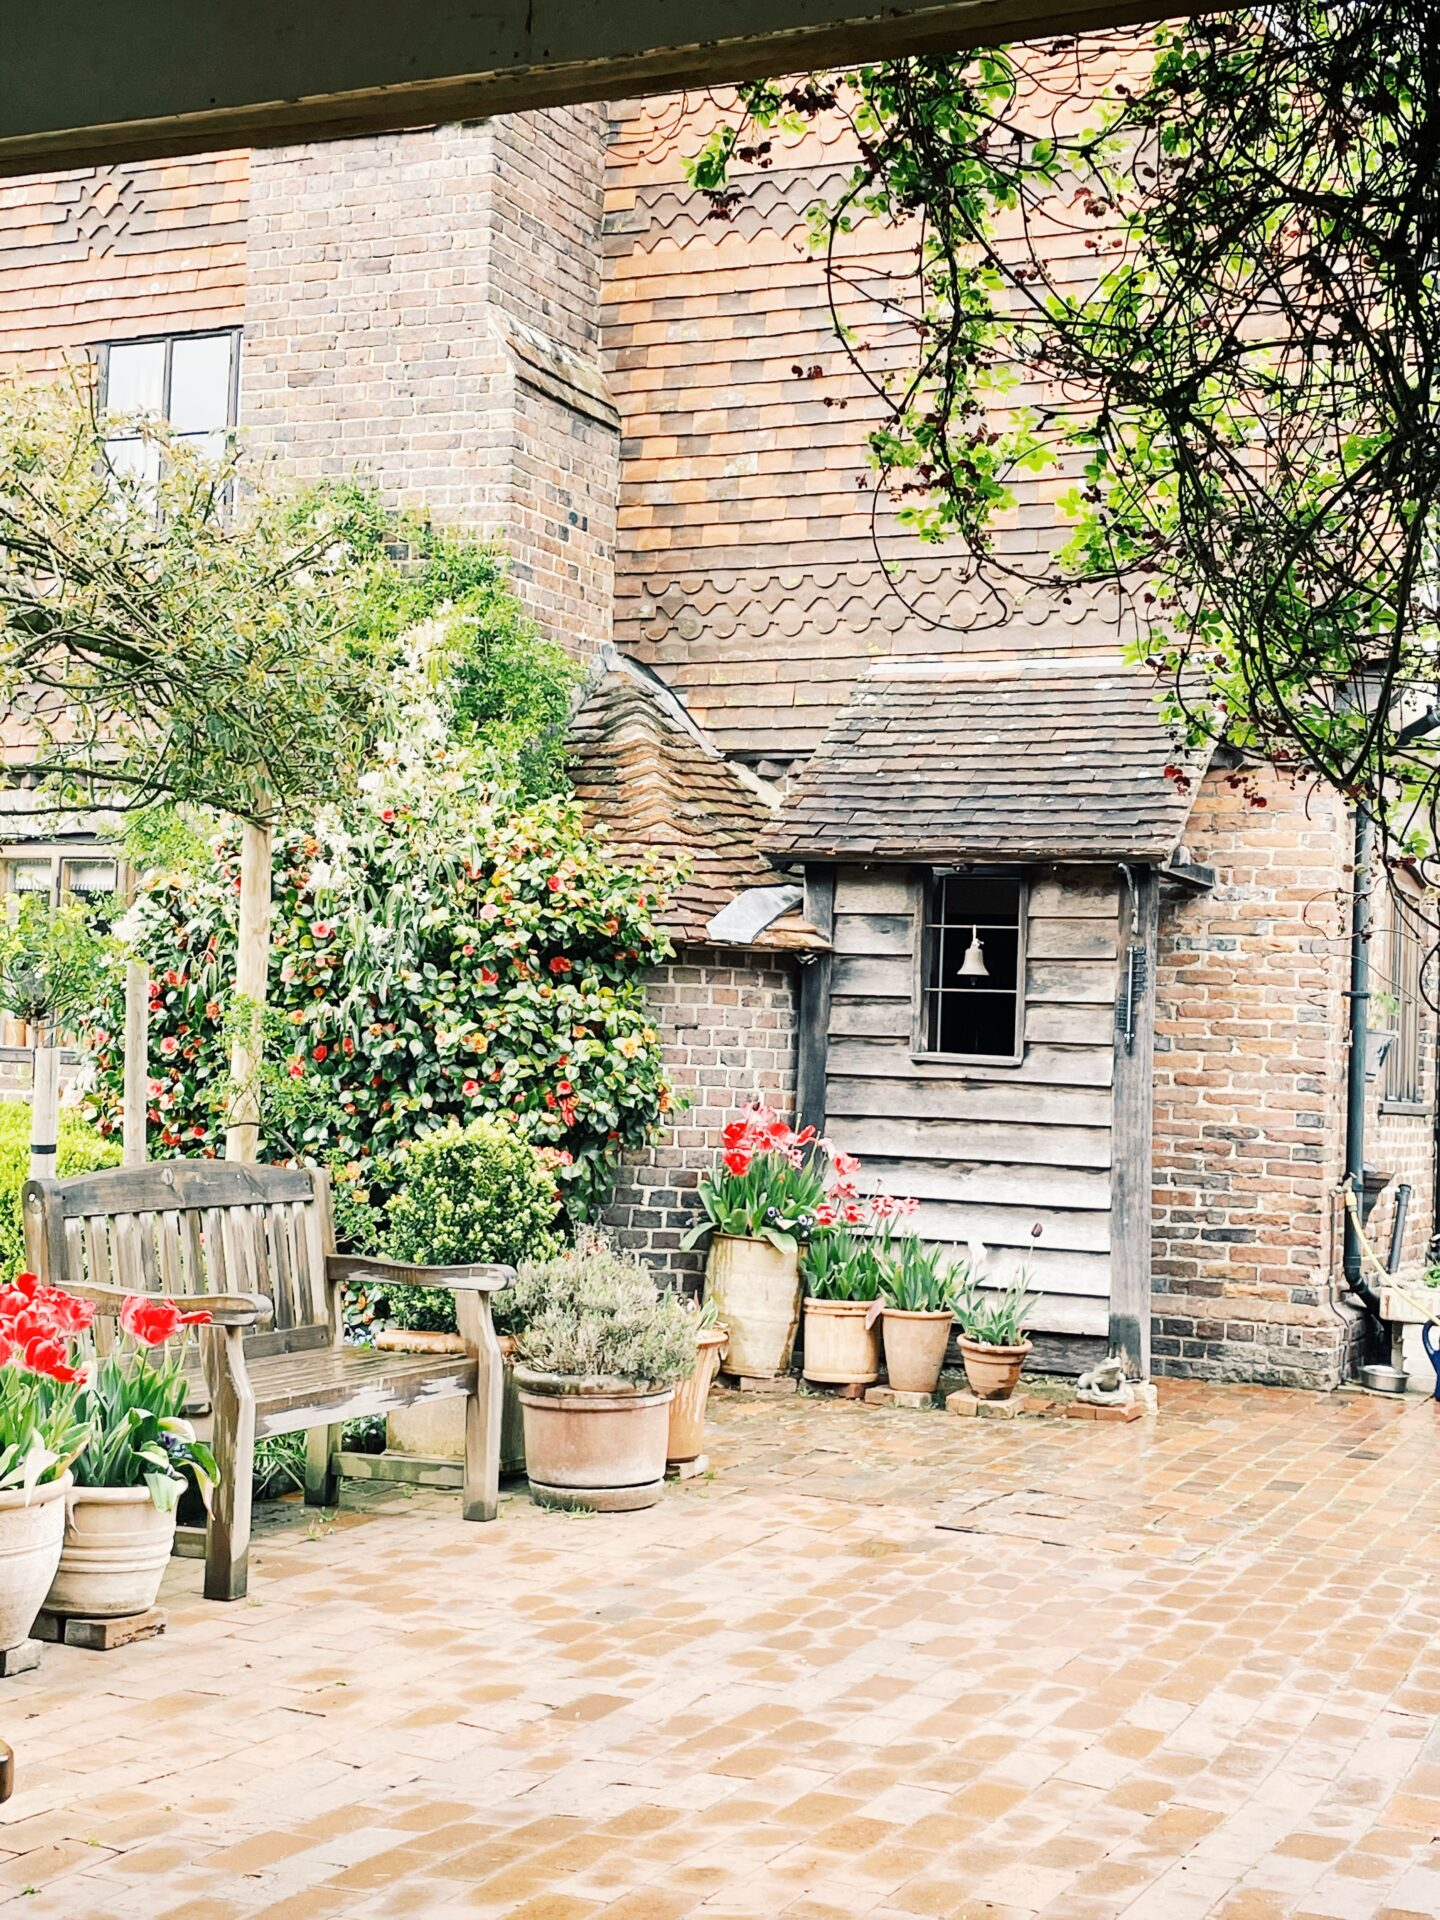 #Kent, day trips from london, london day trips by car, penshurst kent, penshurst palace, kent england, things to do kent england, beautiful places kent england, Rochester, Dover, Canterbury, Kent countryside,